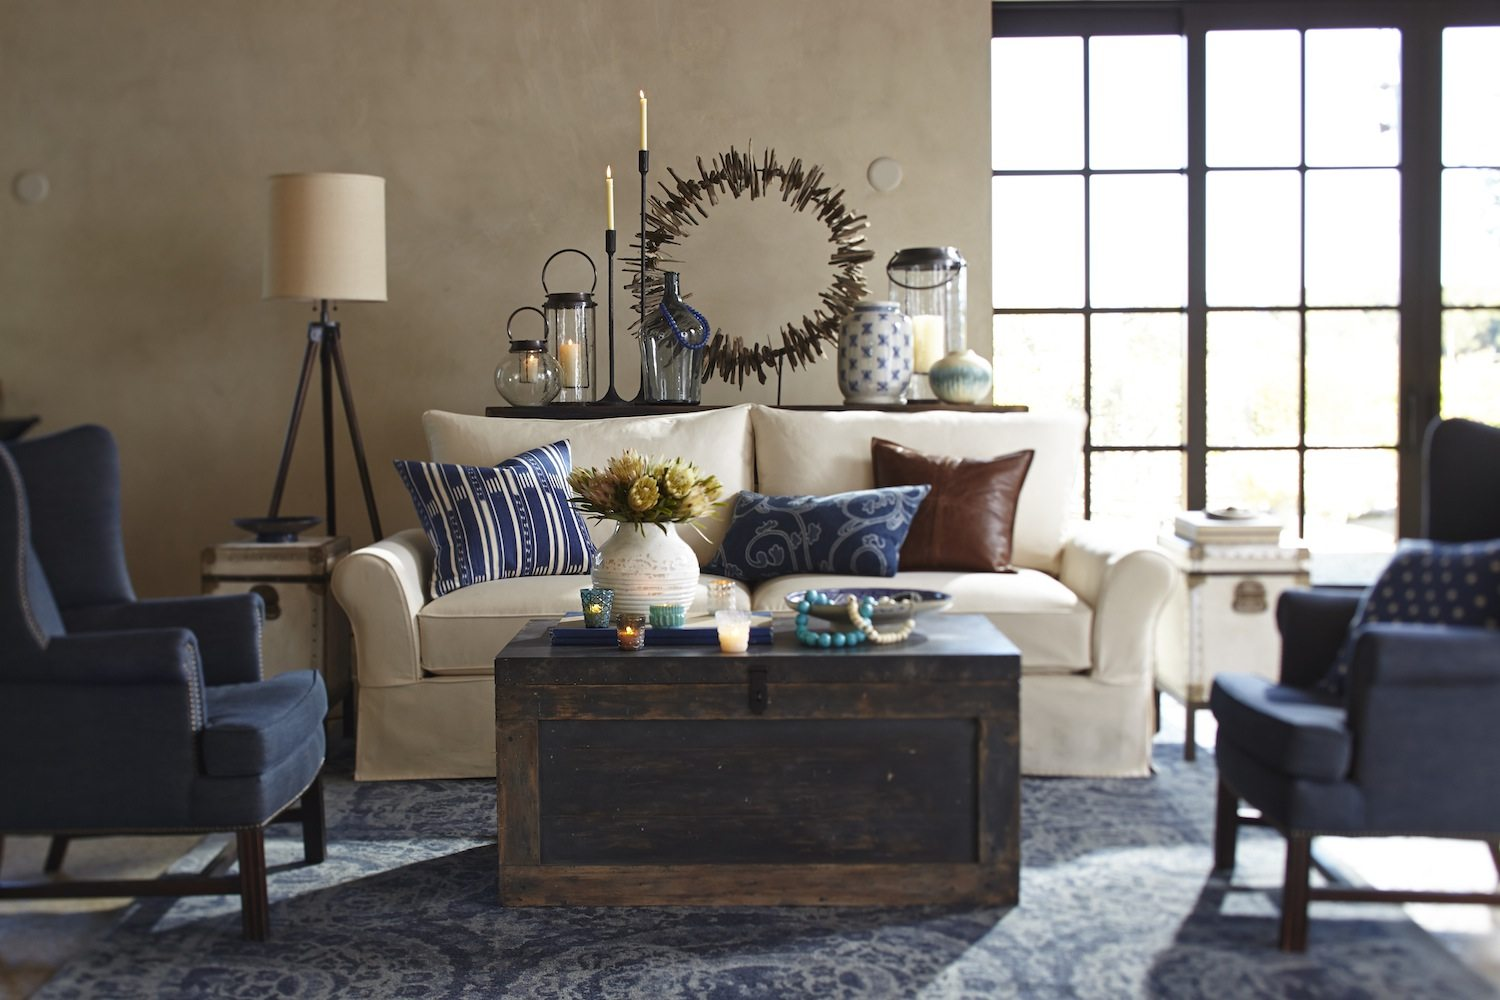 White sofa couch and blue armchairs in a living room from Pottery Barn